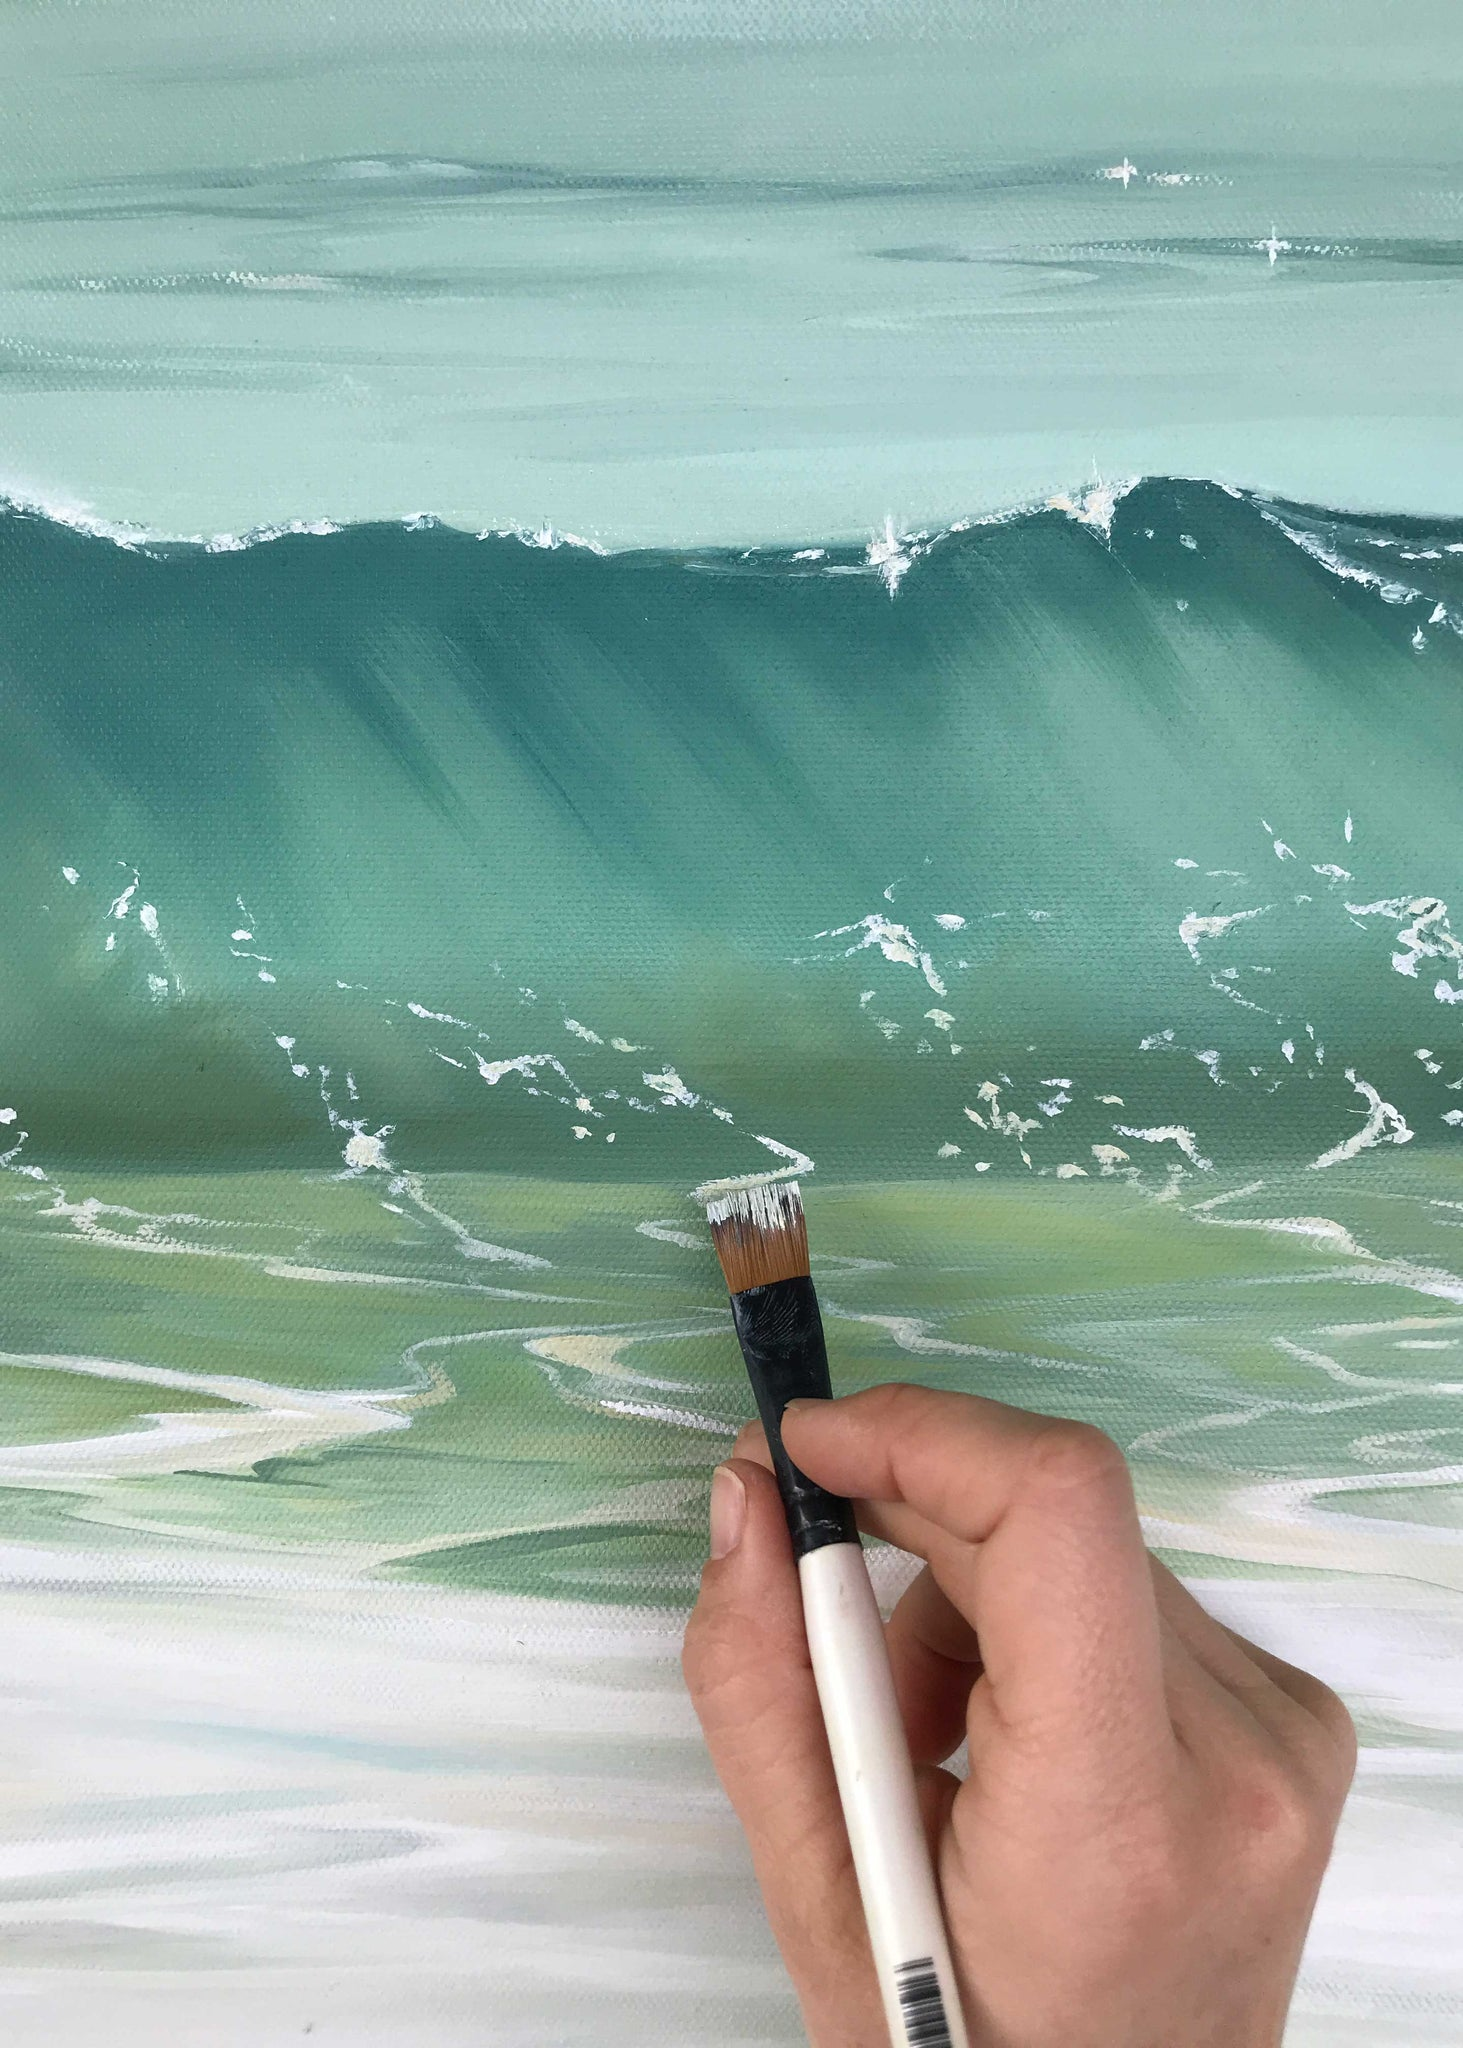 Up close detail painting waves with oil paint - ocean art Julie Kluh